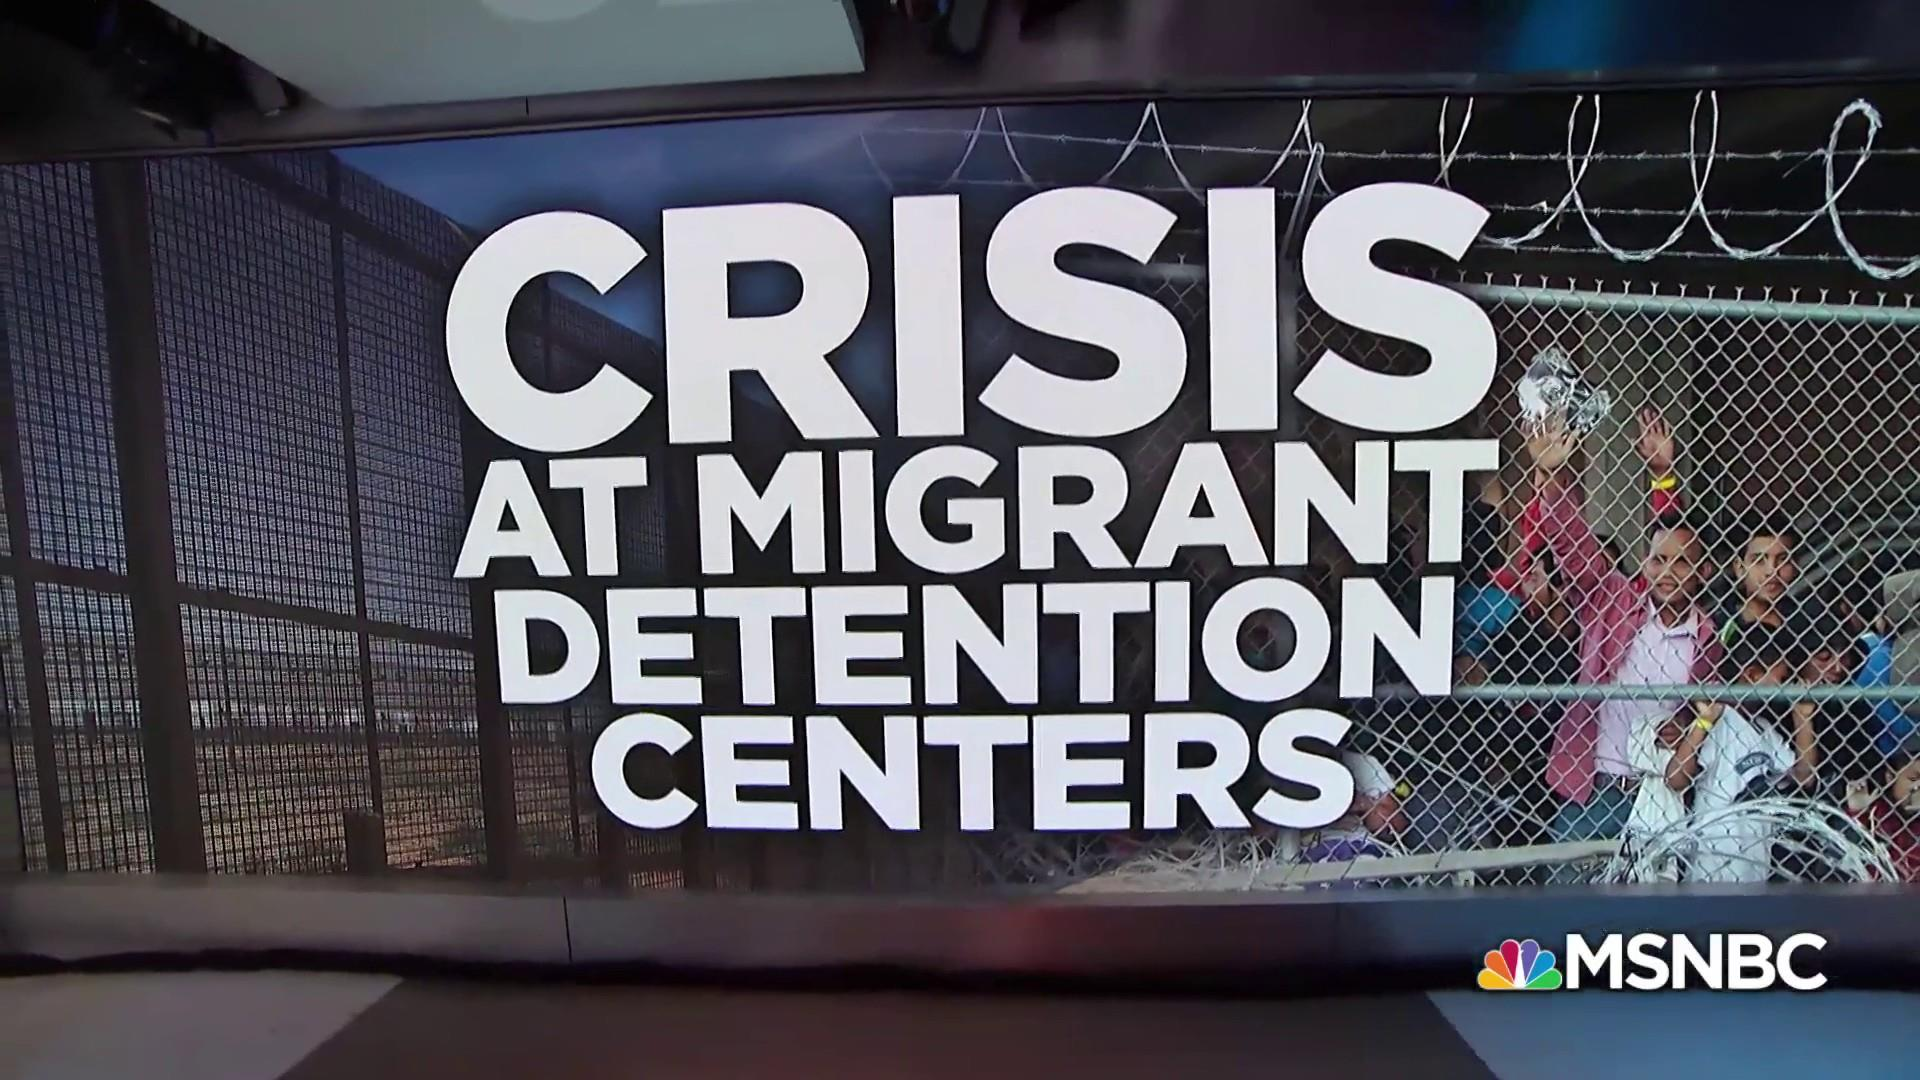 Living conditions at a migrant detention center are 'appalling'